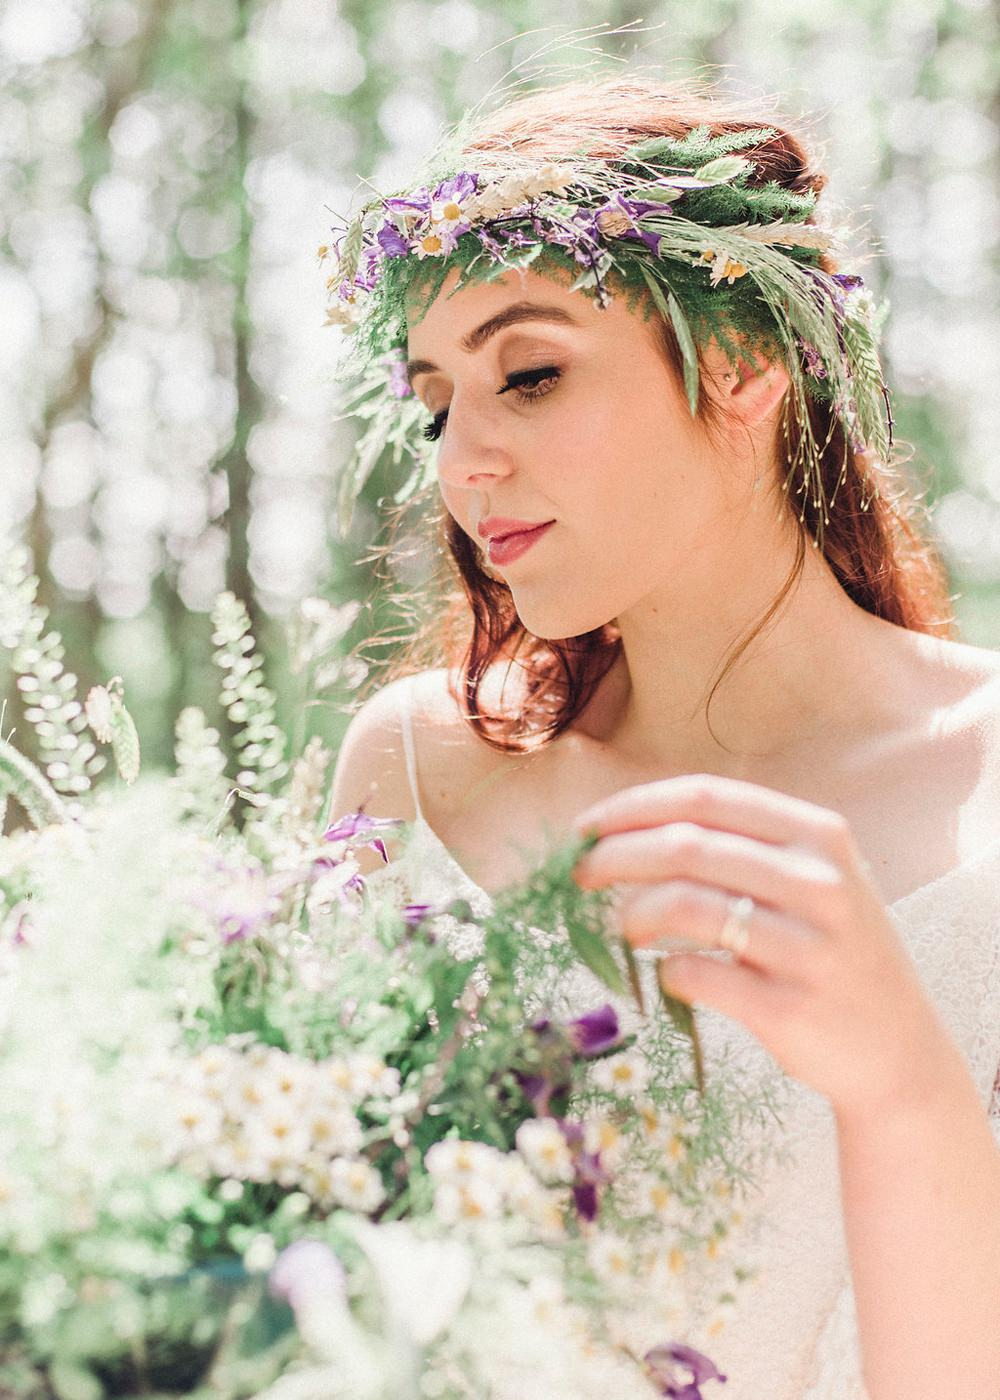 Bride Bridal Flowers Bouquet Greenery Foliage Purple Rose Daisy Wild Boho Woodland Wedding Ideas Camp Katur Emily Olivia Photography